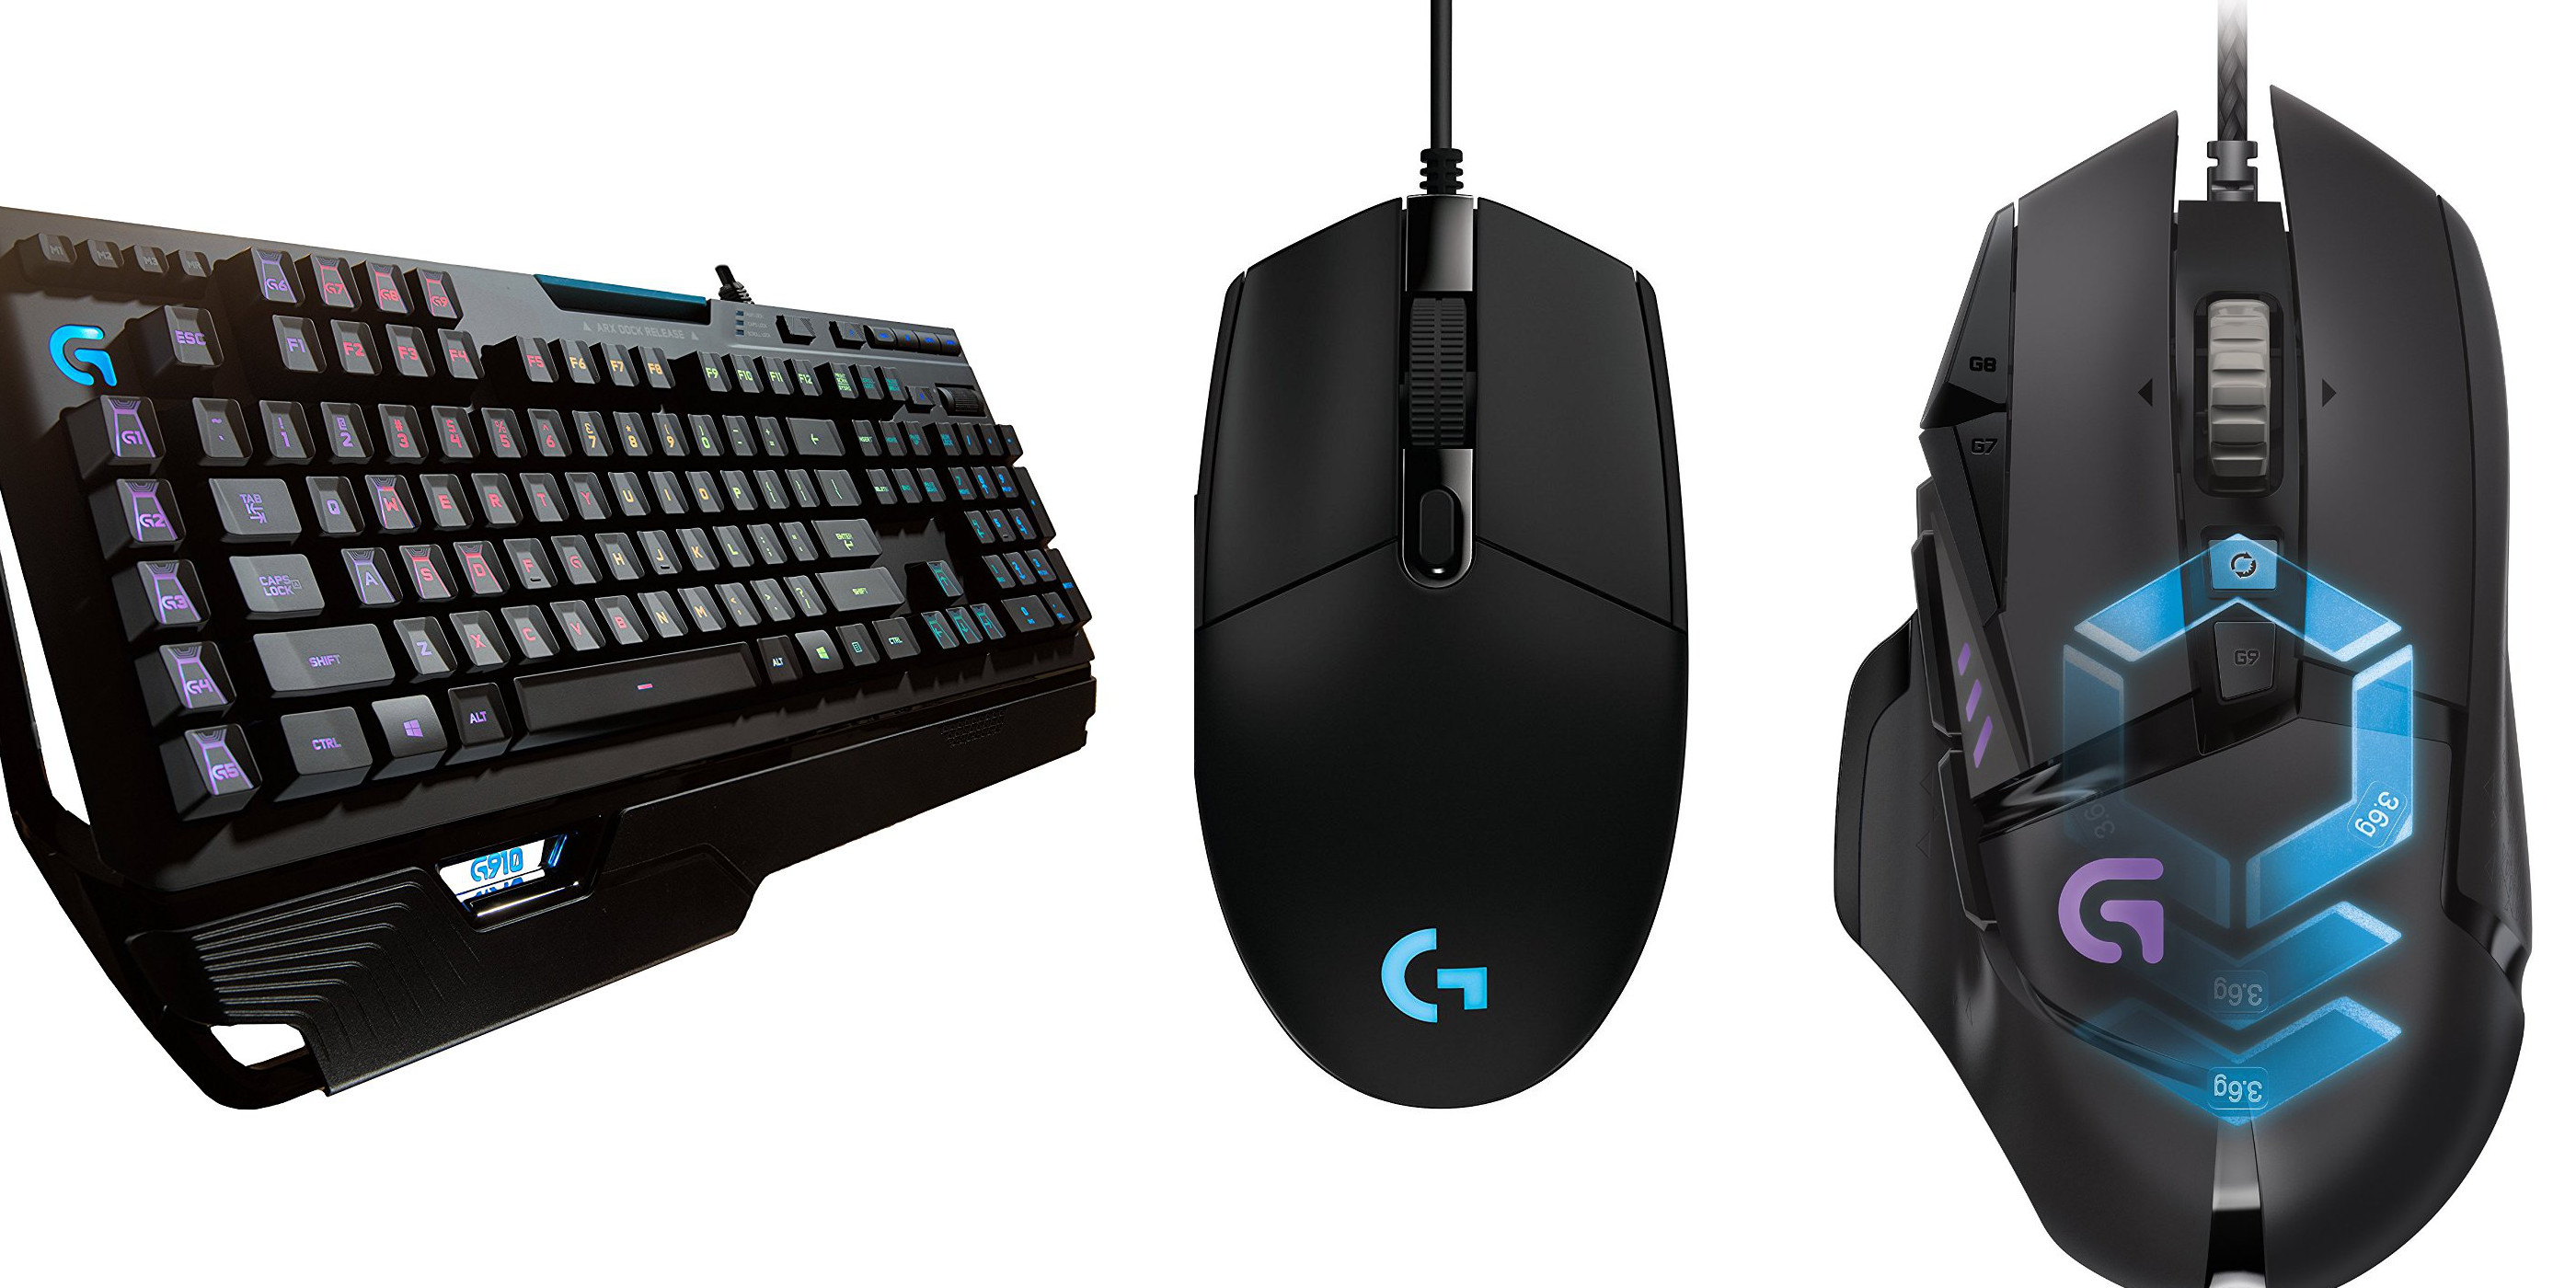 4882ef2a01b Logitech Gaming Black Friday Sale: mice from $20, keyboards $35, much more  - 9to5Toys